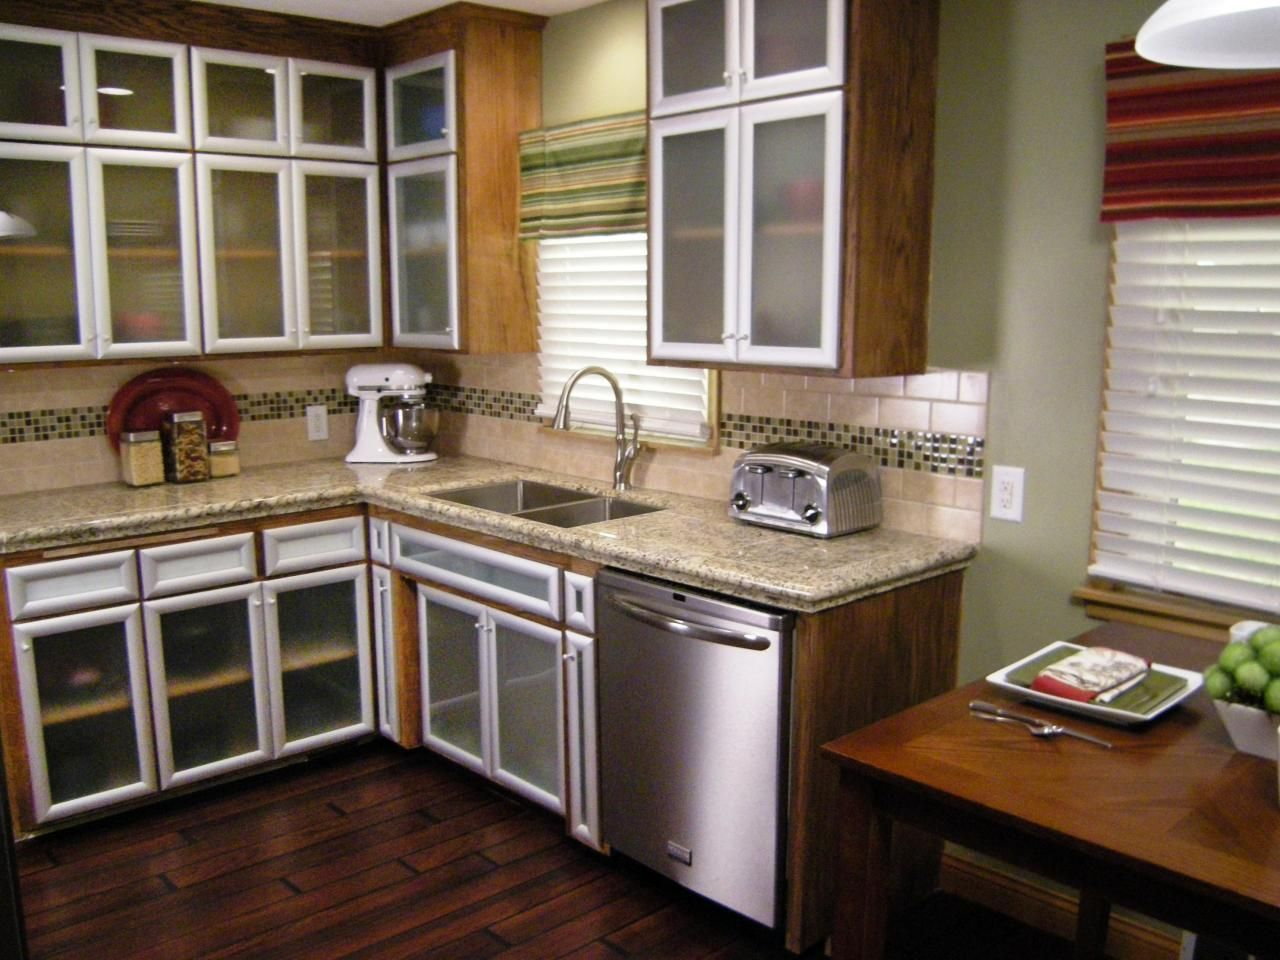 inexpensive kitchen remodel Love your house without the kitchen Join the club DIY Network s I Hate My Kitchen series hosted by James Young gives homeowners hope with economical yet